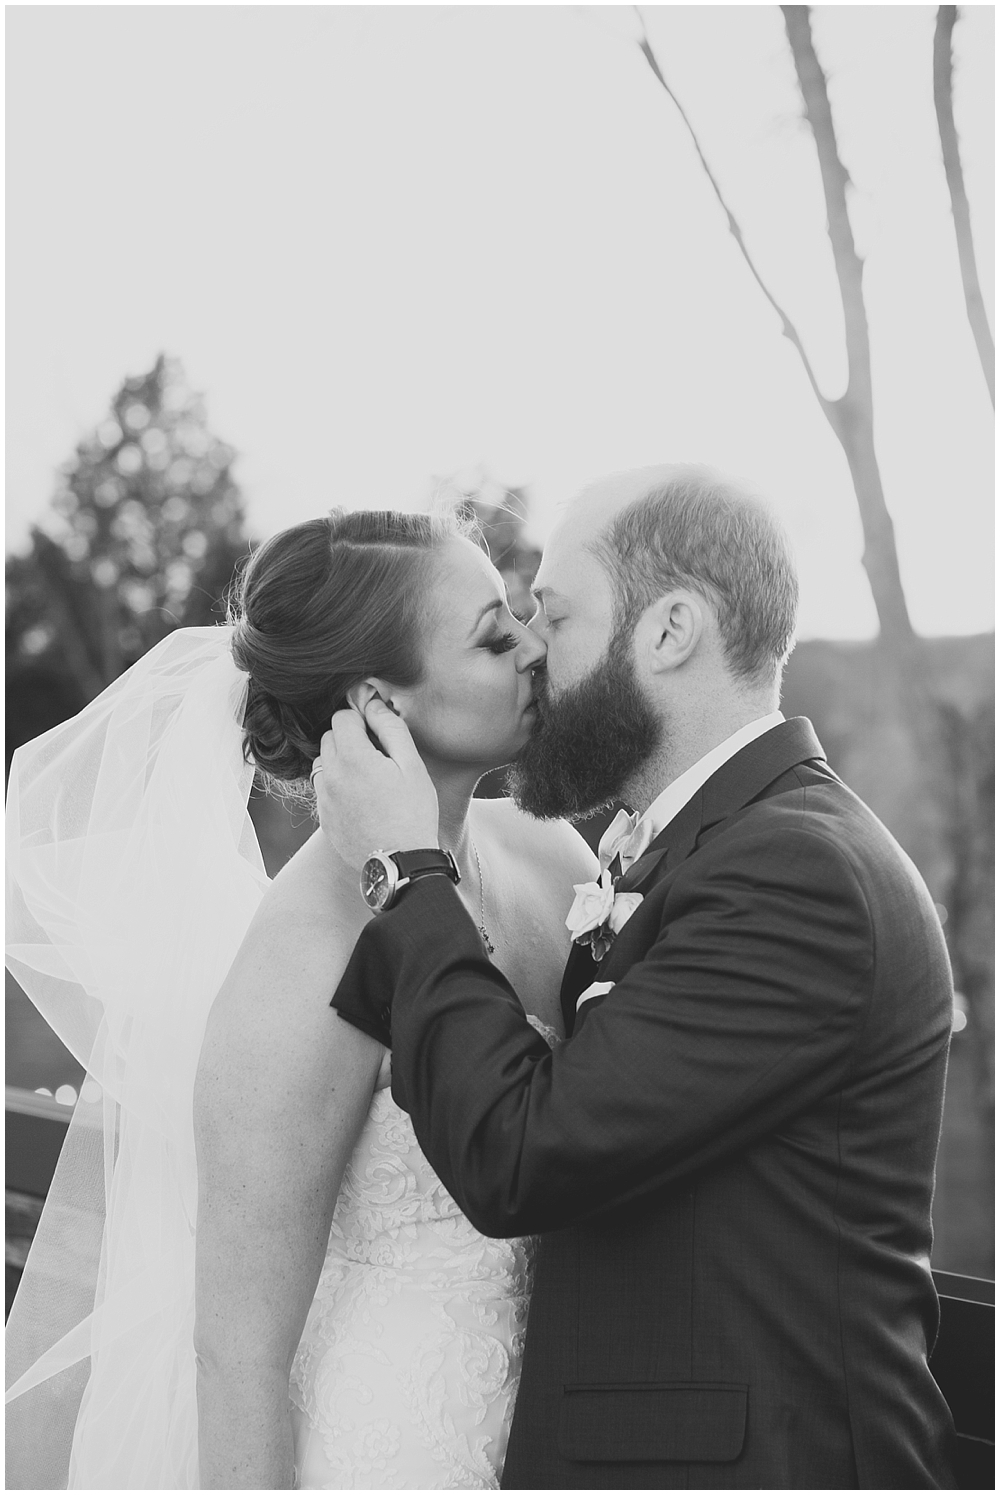 PattengalePhotography_StLouis_Wedding_Photographer_Boho_Hipster_Urban_Style_StCharles_Missouri_BullRunWinery_Charlottesville_Ashley&Sawyer_0114.jpg